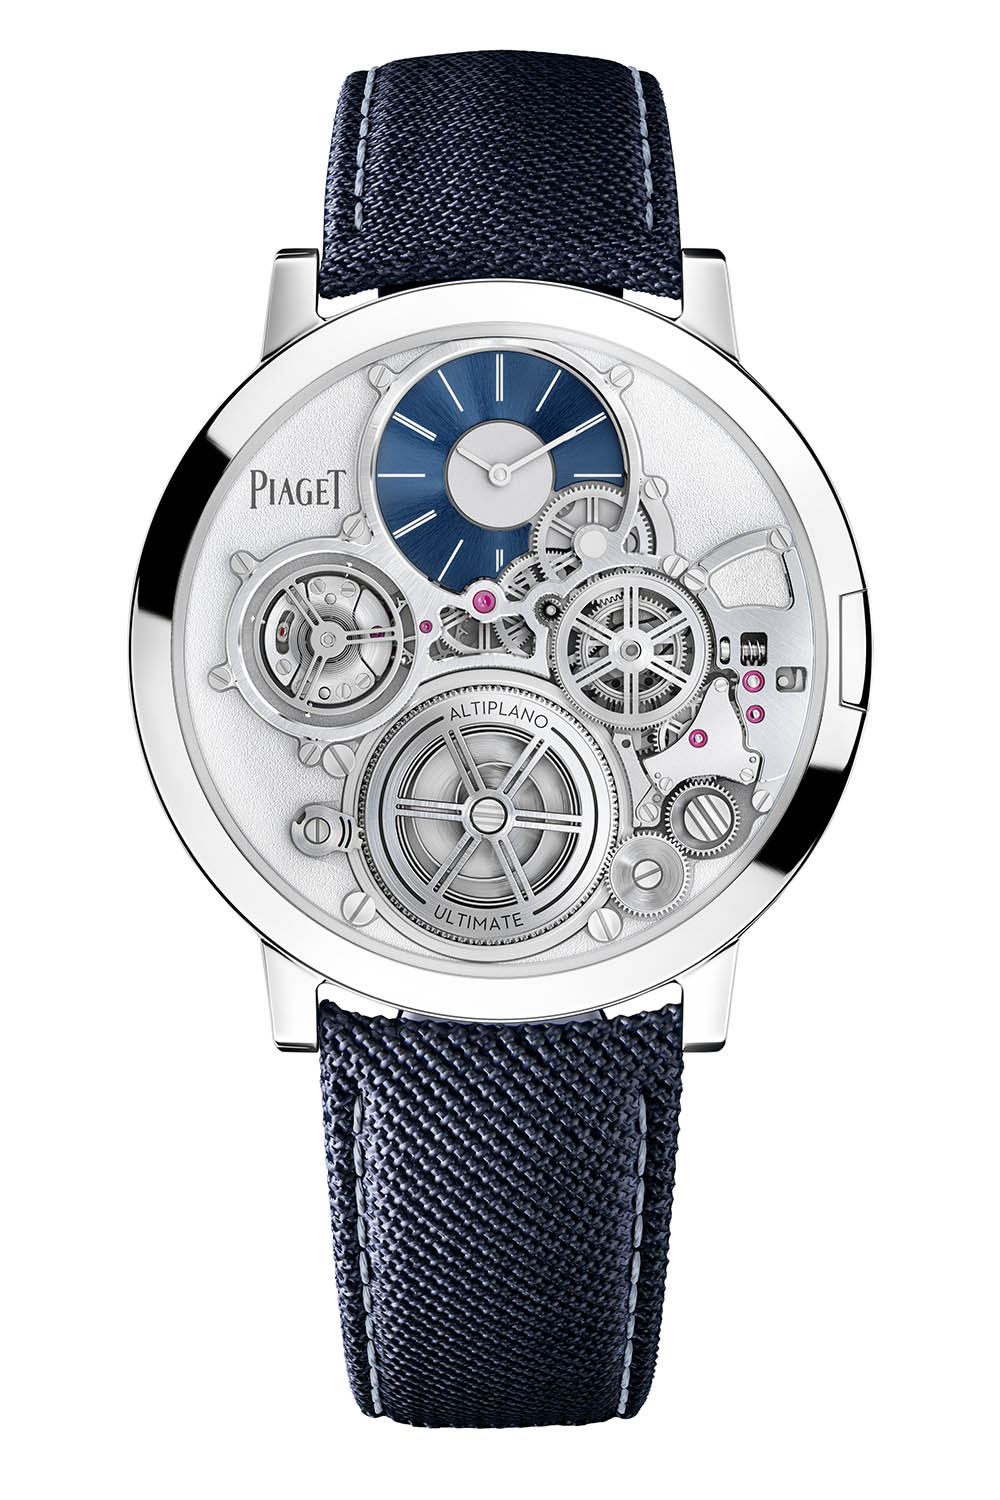 Piaget Altiplano Ultimate Concept 2020 - 7